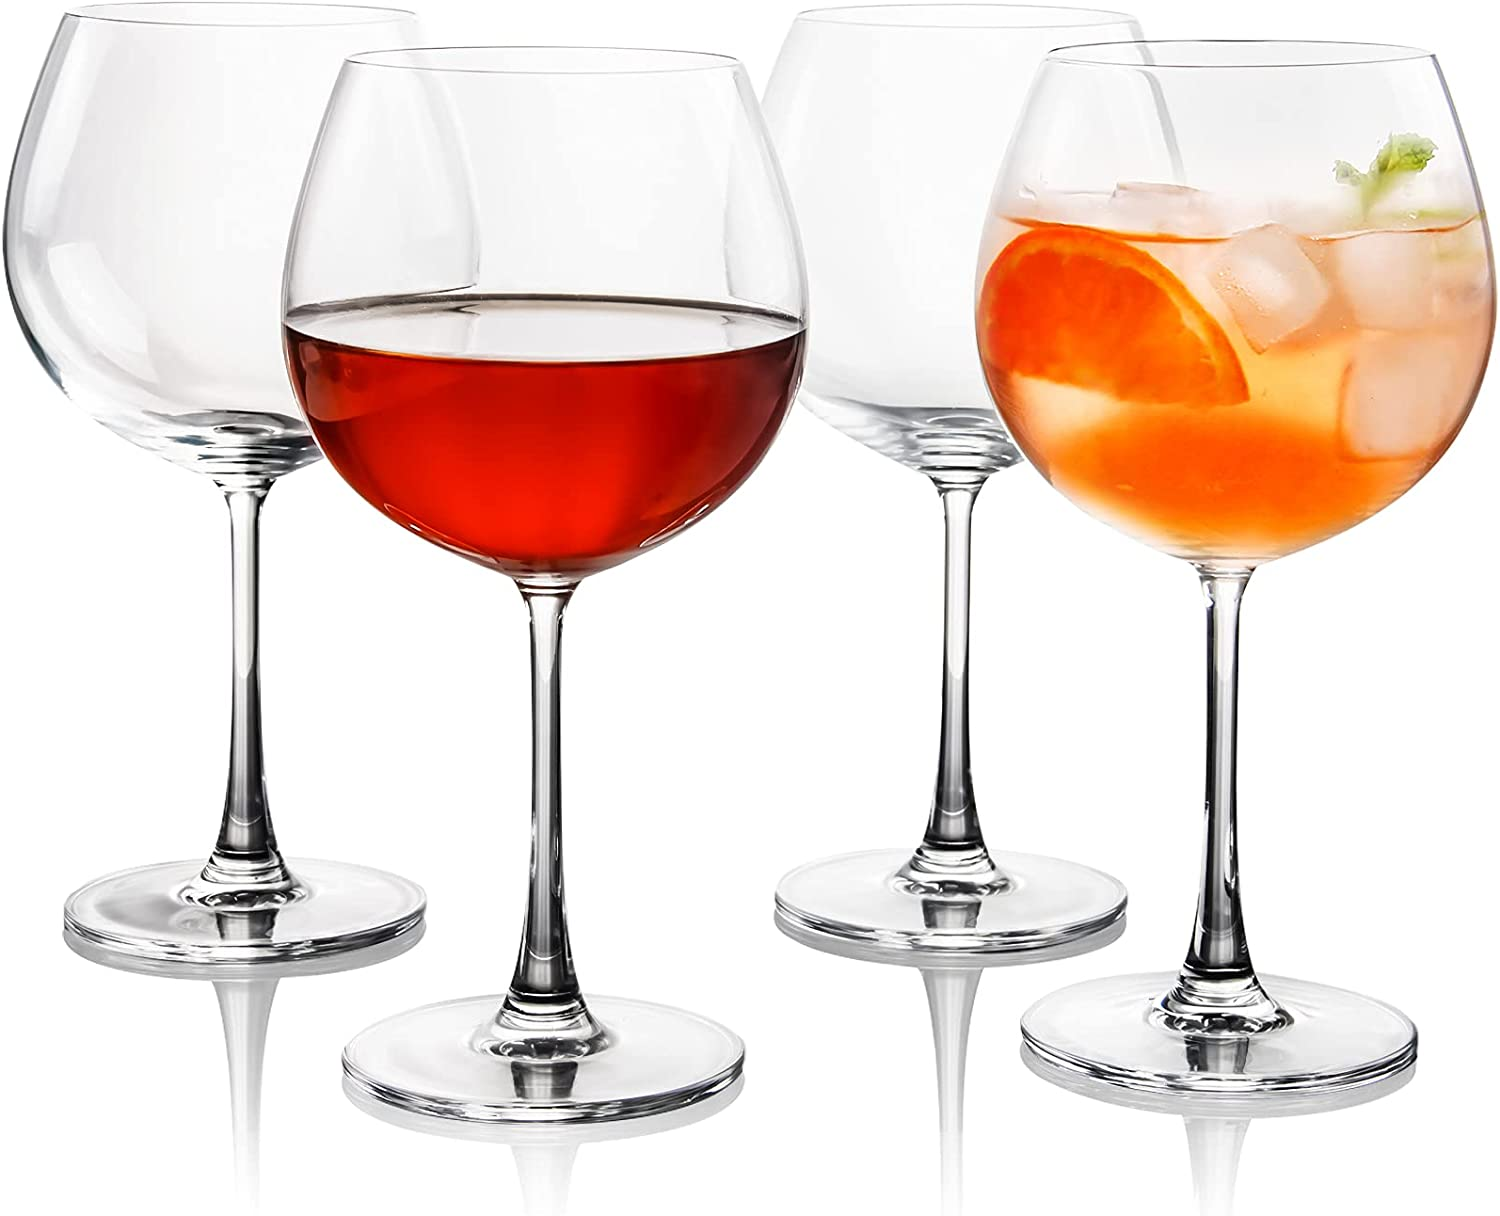 FAWLES Crystal Red Wine Glasses Set of 4, 23 oz (640 ml) Balloon Wine Goblets Set, Gin and Tonic Glasses Set, Perfect Gifts for Housewarming, Wedding and Anniversary